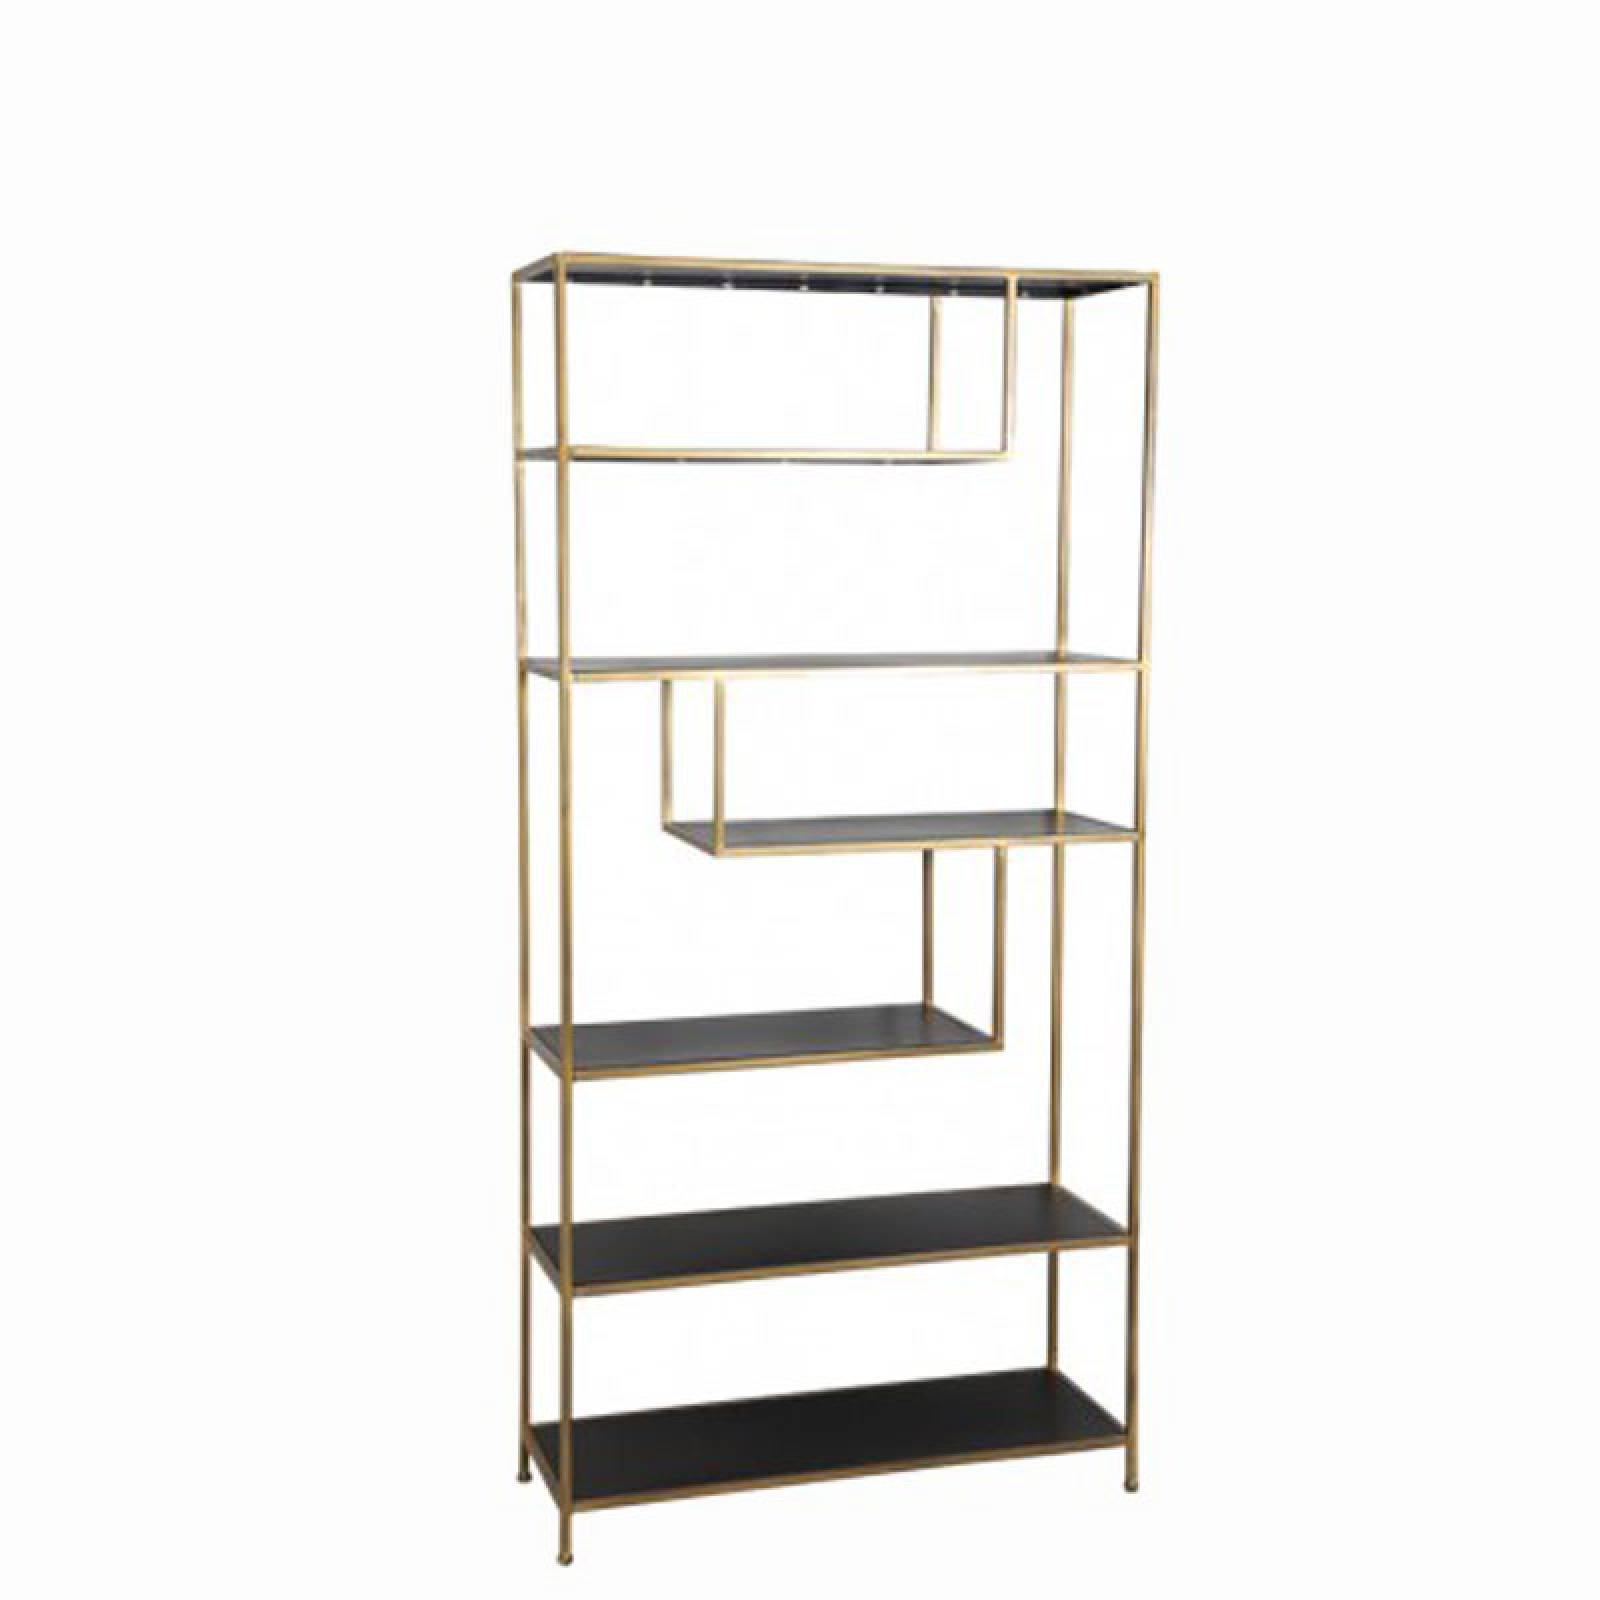 Large Gold Metal Geometric Open Shelving Unit thumbnails